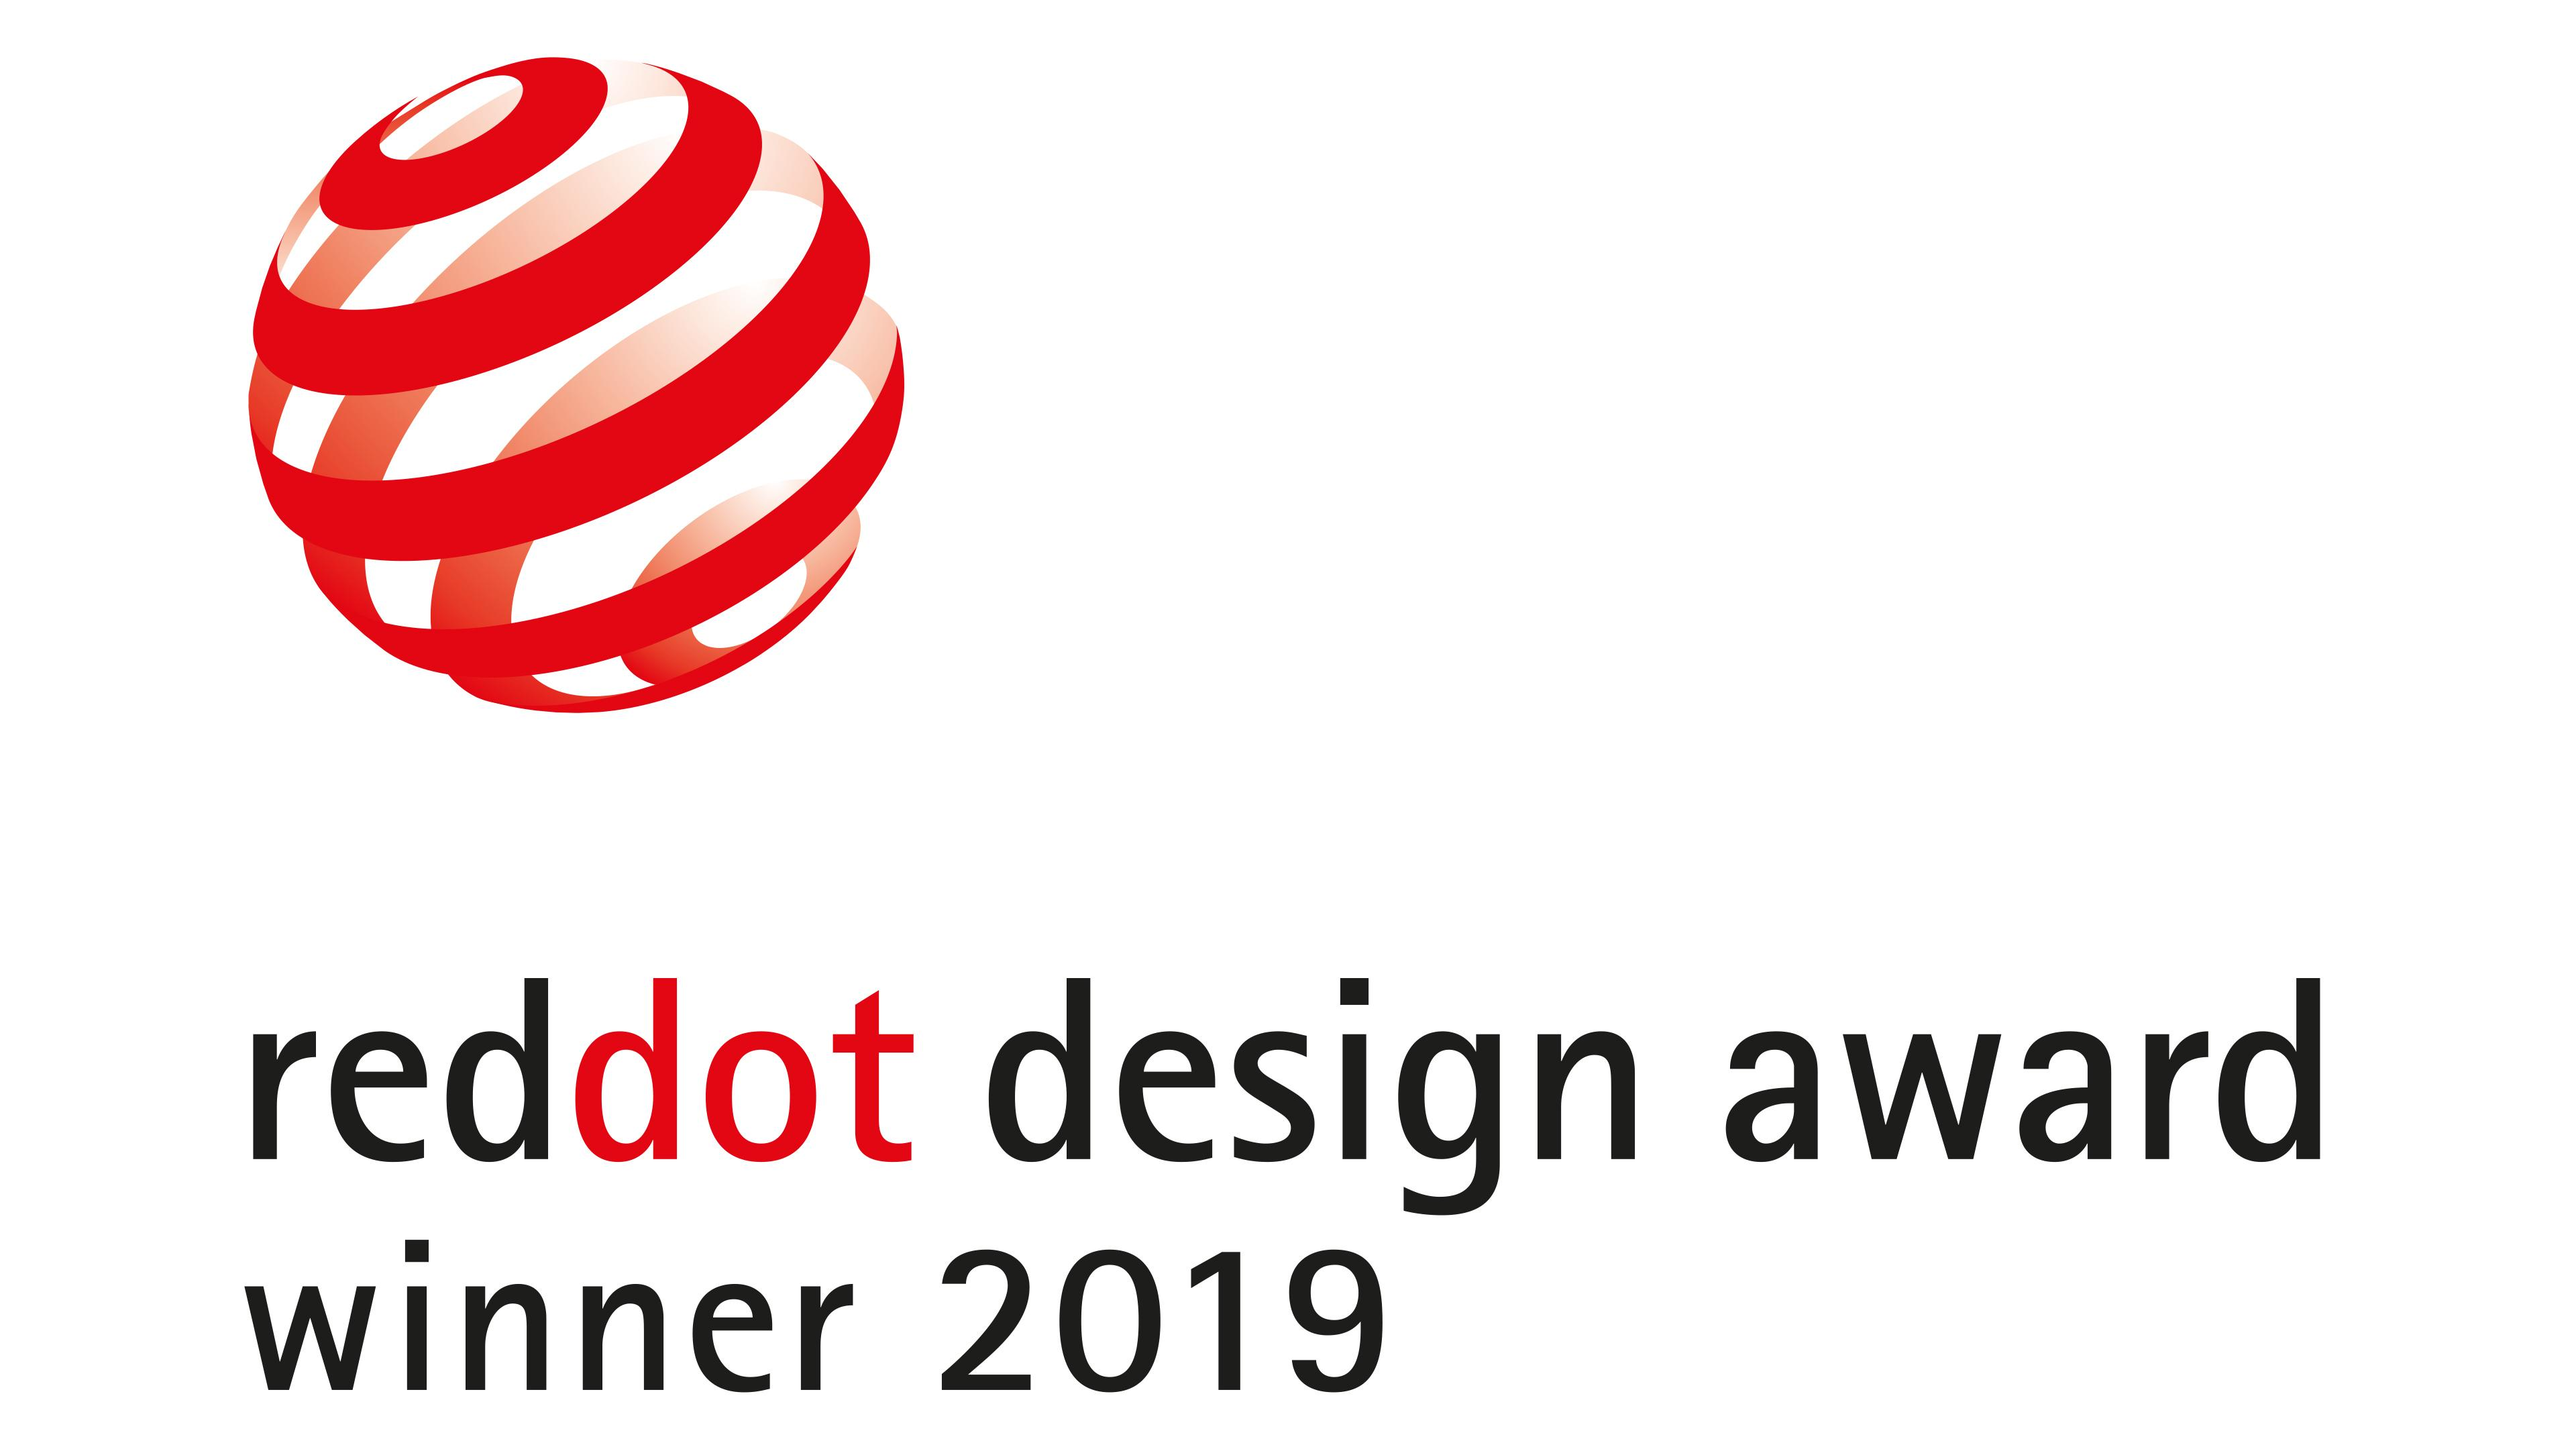 Award_PD2019_RD_design.jpg